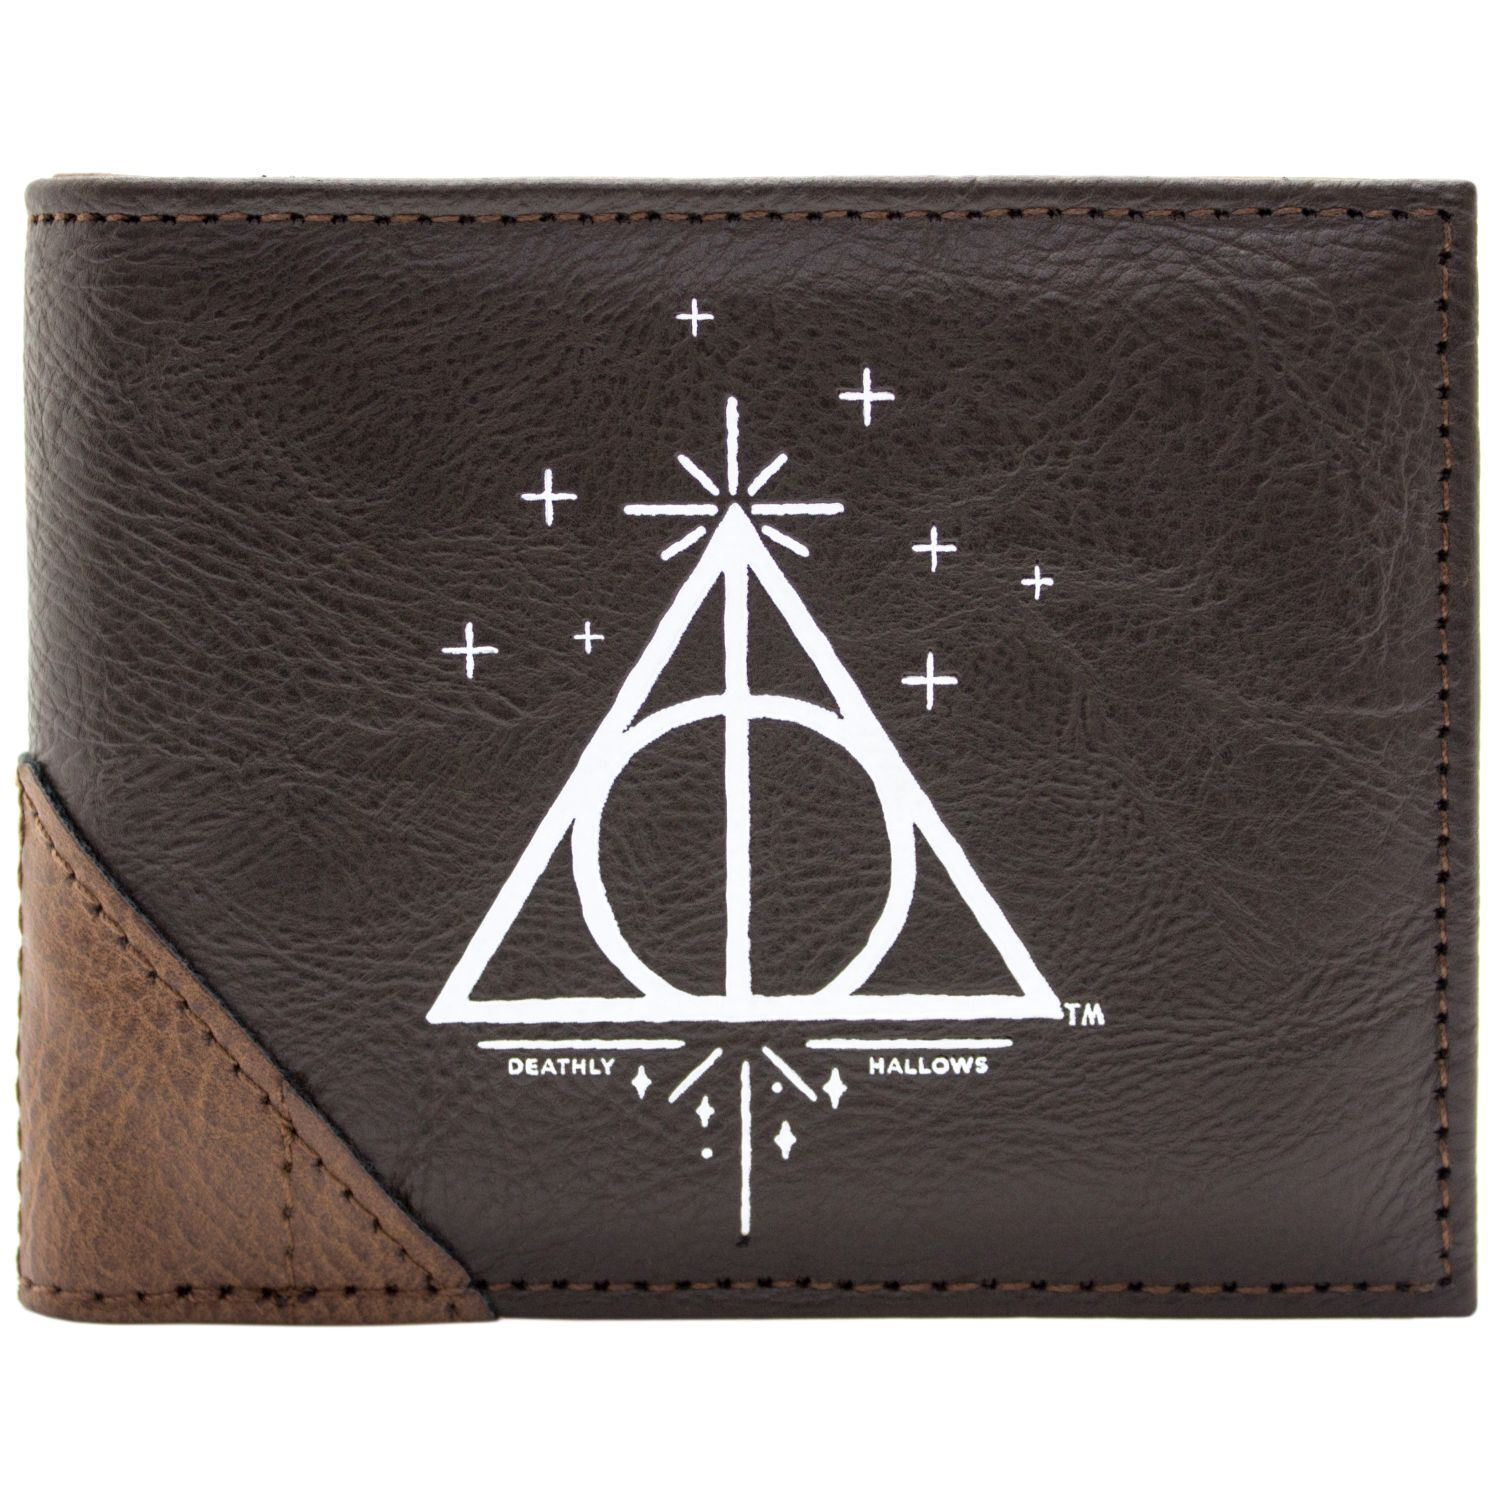 NEW OFFICIAL HARRY POTTER DEATHLY HALLOWS BROWN ID & CARD BI-FOLD WALLET